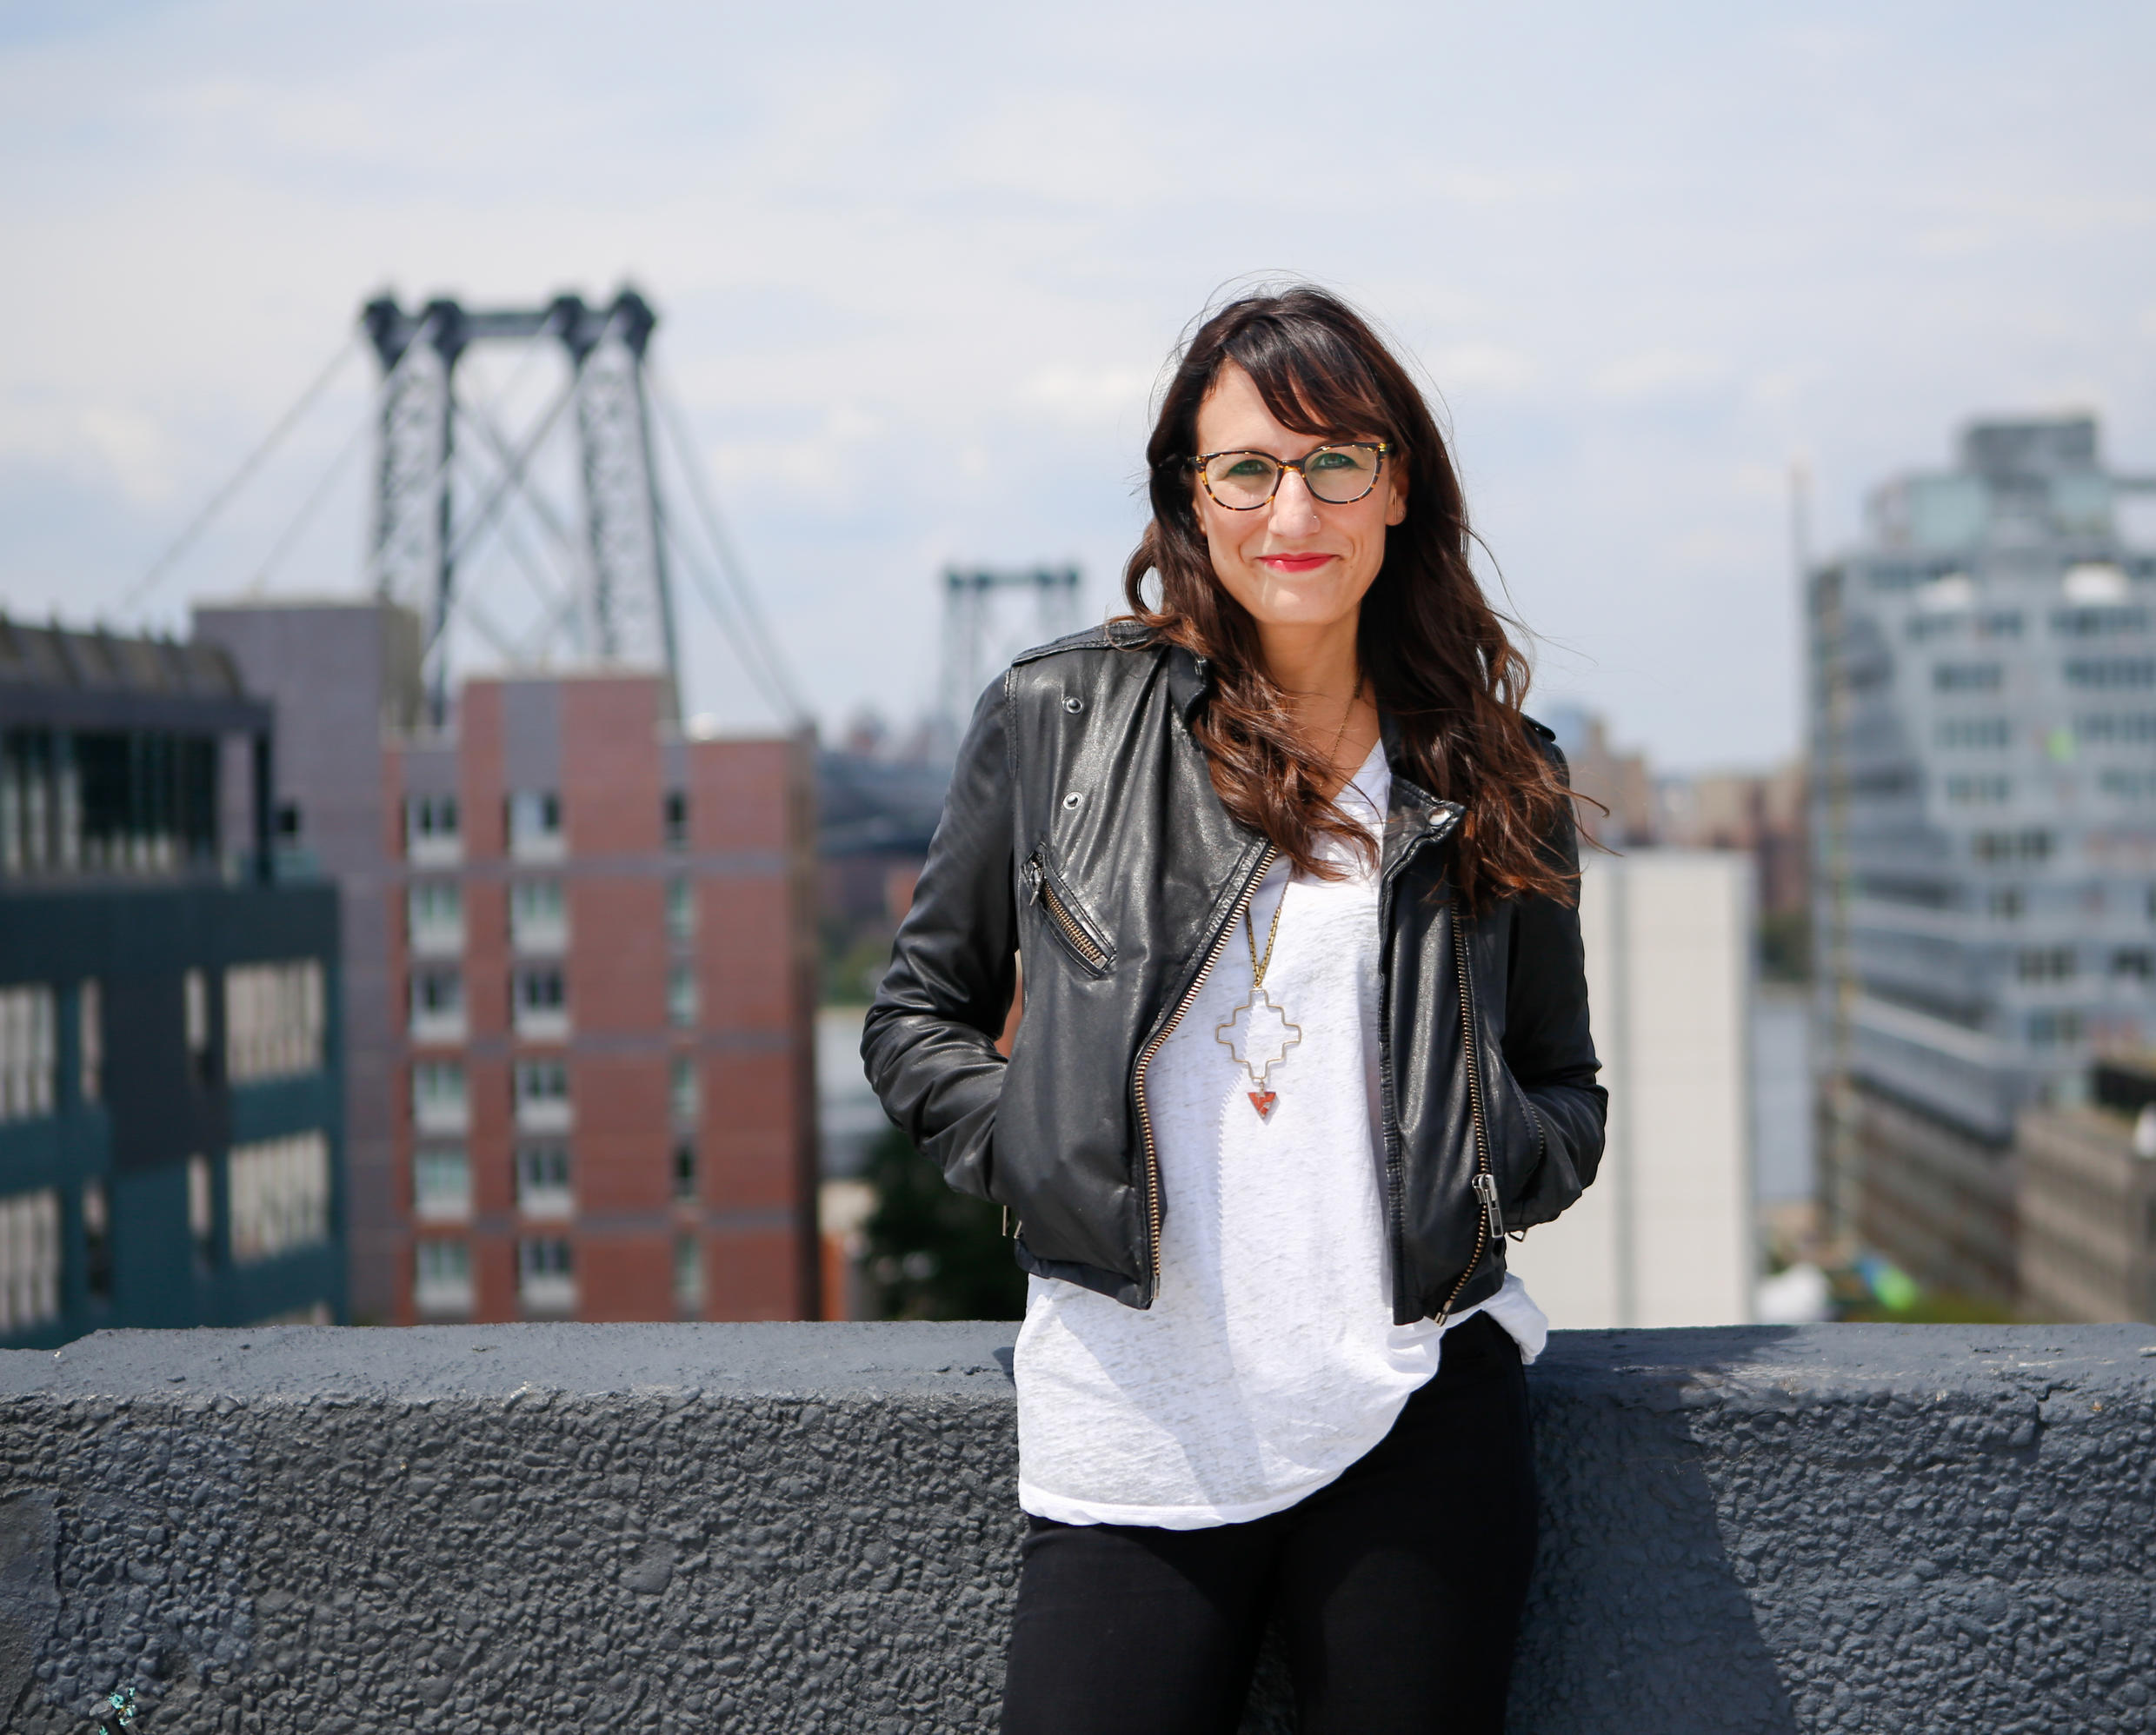 Jessica Bennett is the New York Time's first gender editor